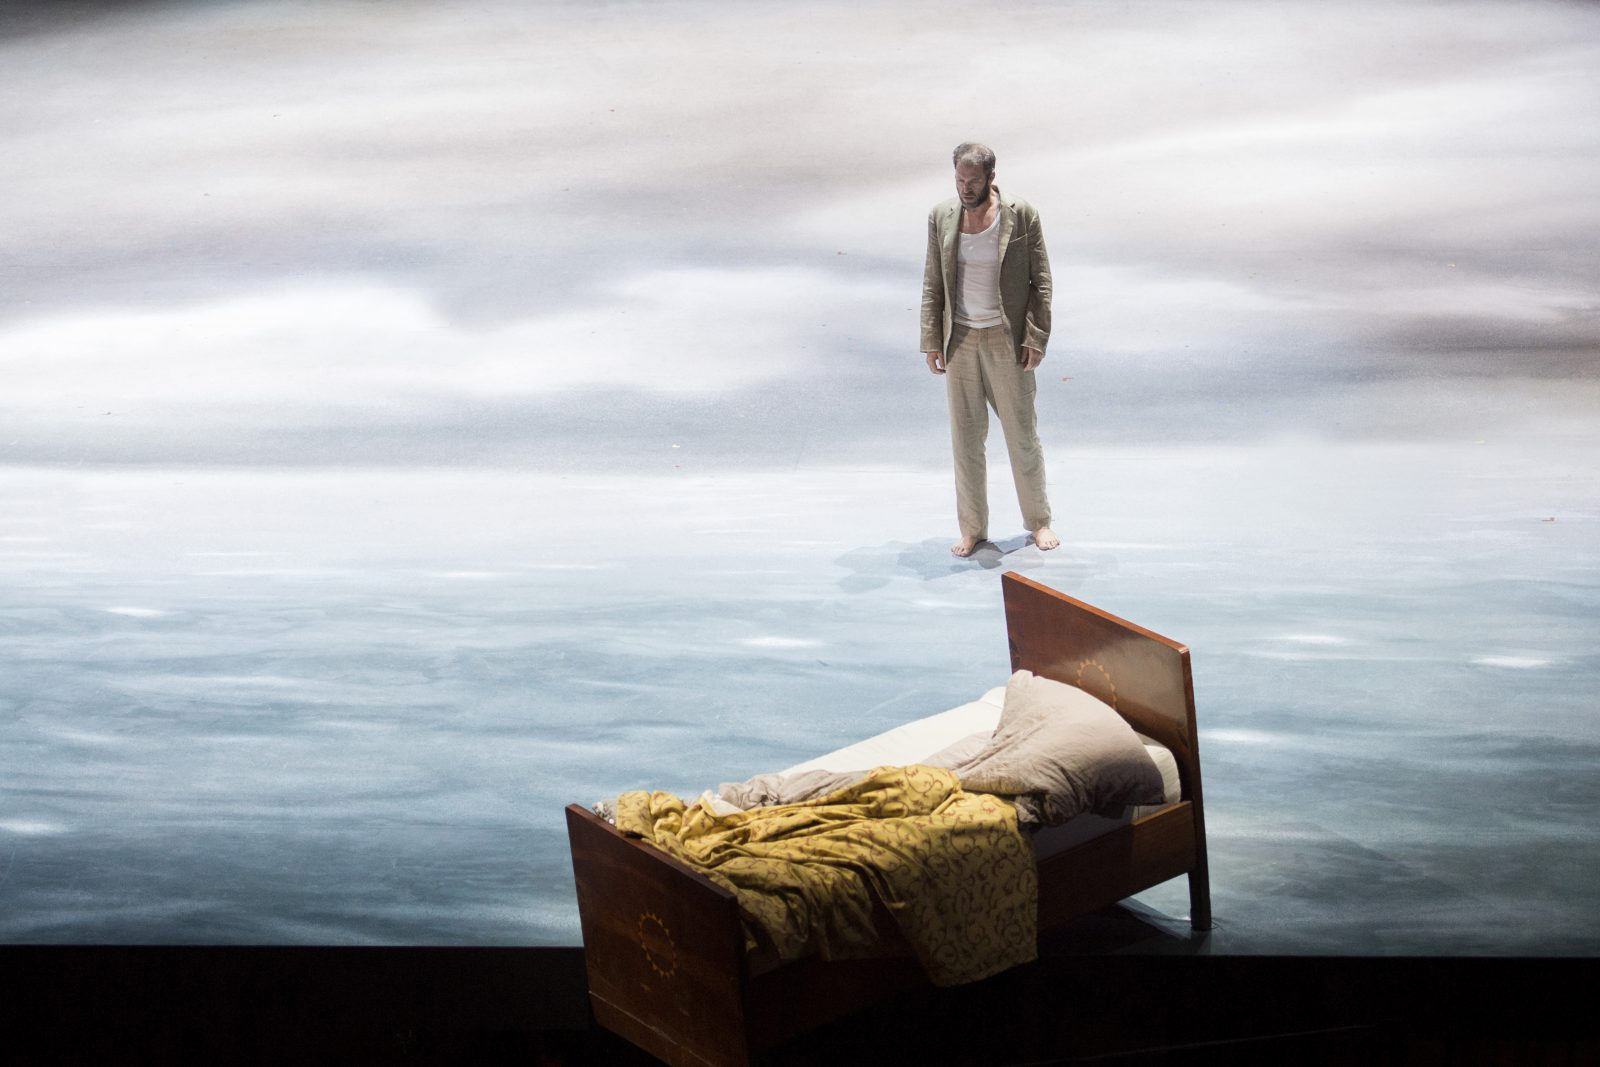 Photo M. Rittershaus | C. Loy, Peter Grimes (B. Britten) | Sets: J. Leiacker Costumes: J. Weihrauch | Theater an der Wien 2015